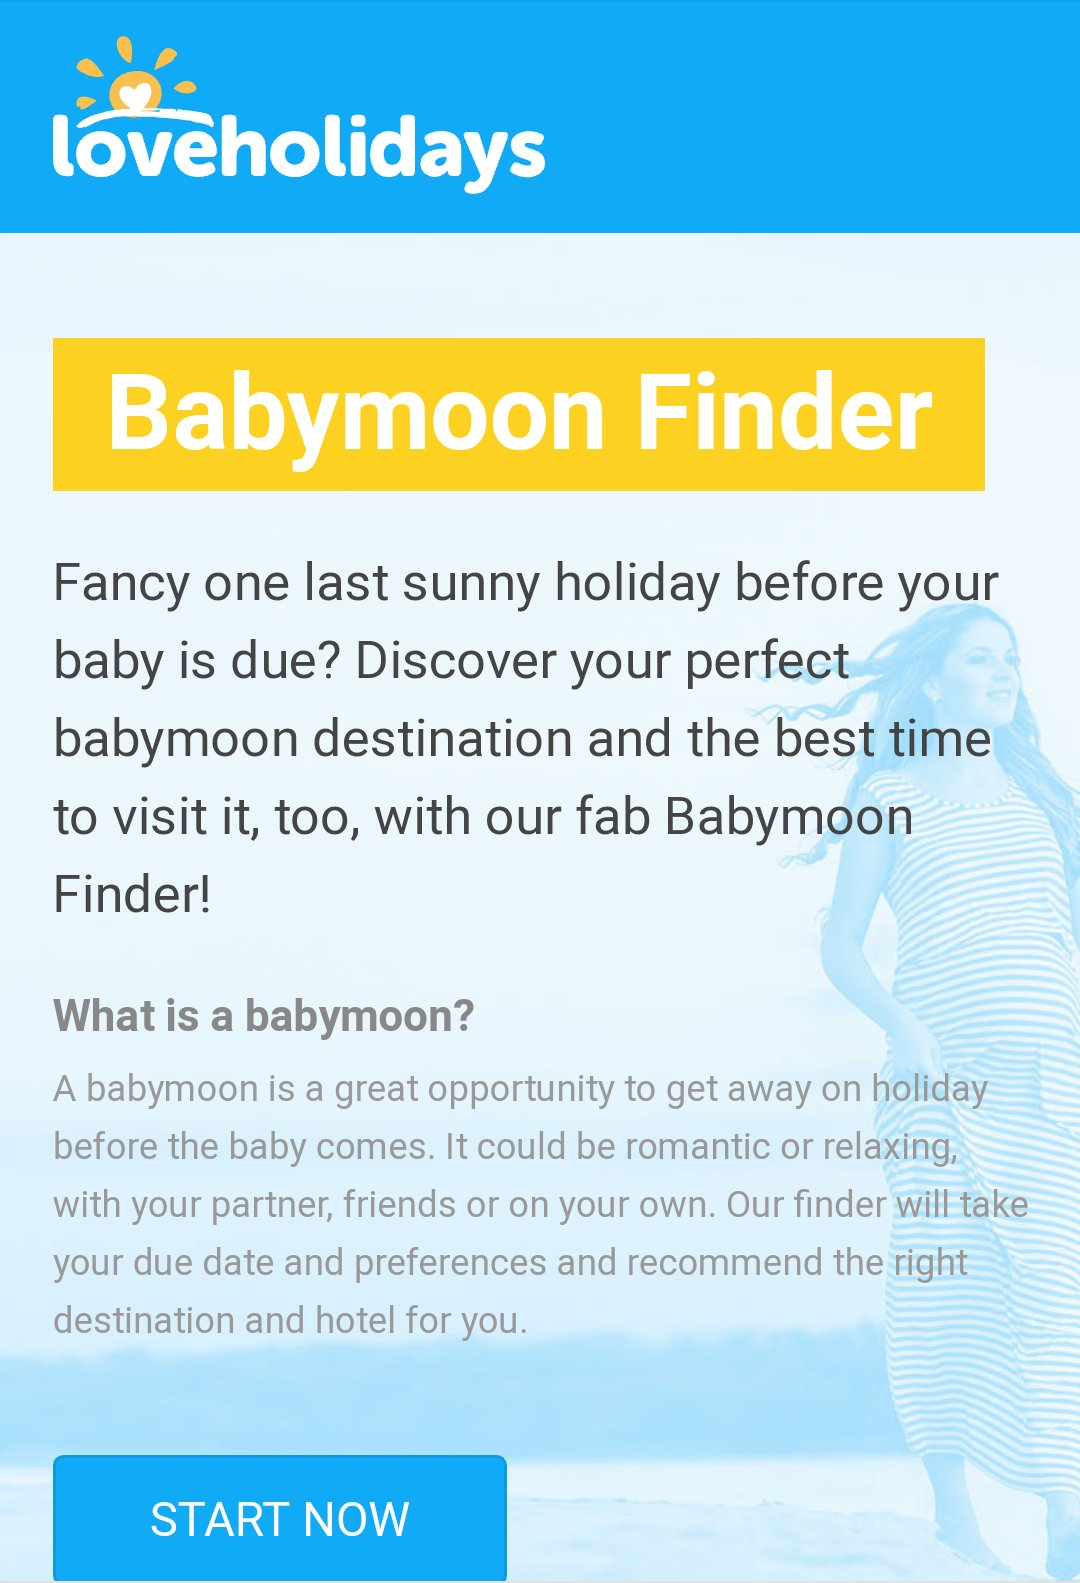 Image of the LoveHolidays Babymoon Finder. Part of a blog post on Babymoon Tips - Things to consider when planning a babymoon